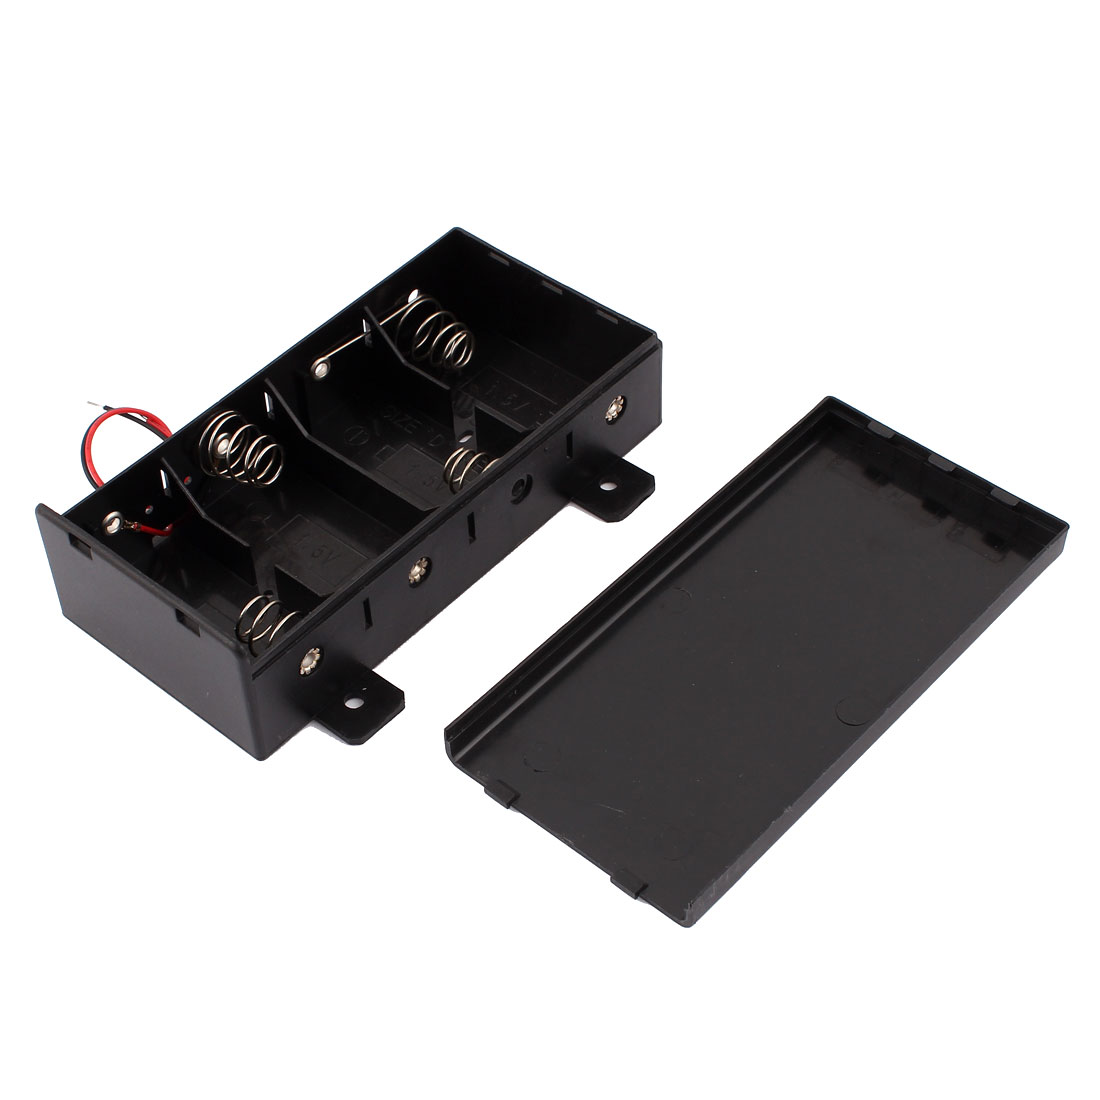 Wire Leaded Plastic Housing Battery Holder Case Cell Box w Slide Cover for 4 x D Size Batteries